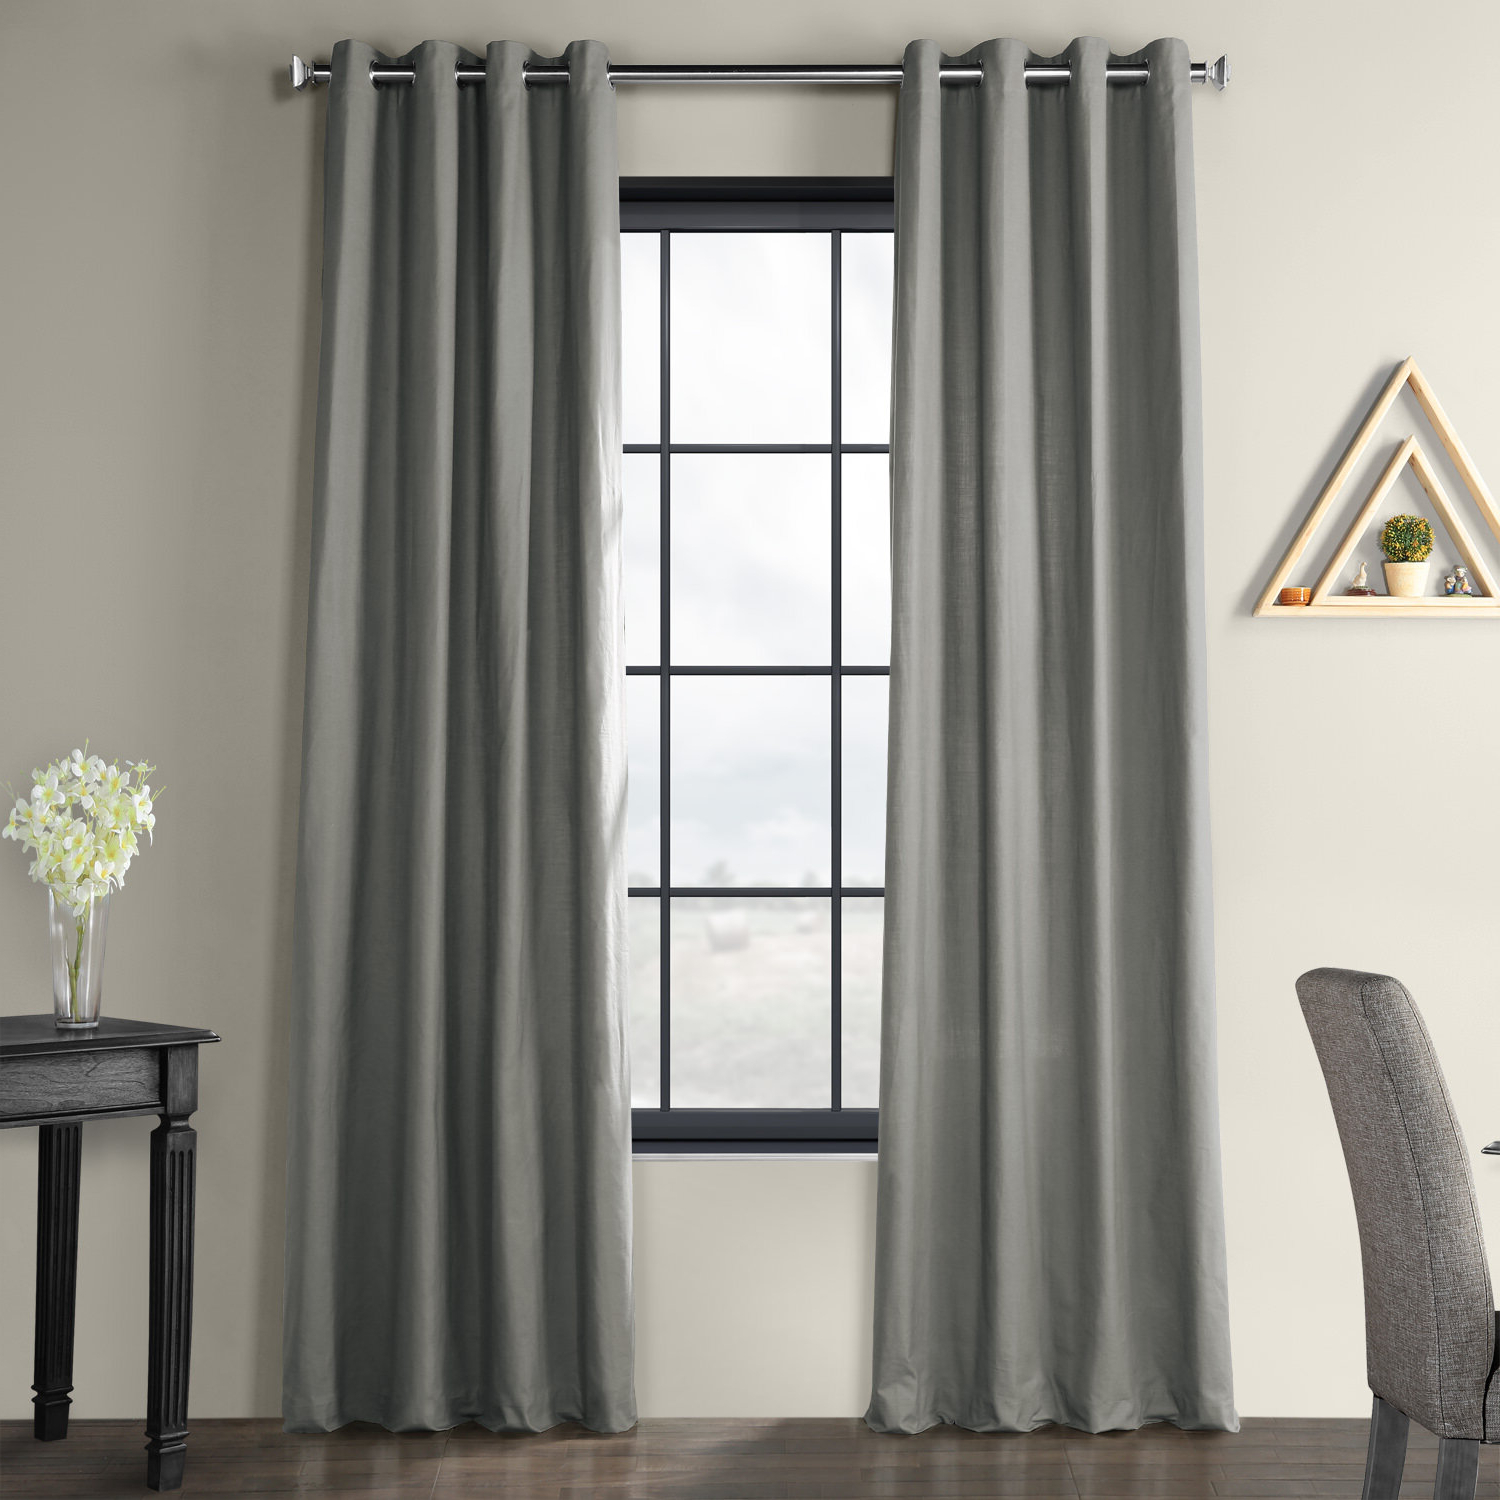 Well Liked Solid Country Cotton Linen Weave Grommet Indoor Single Curtain Pane Within Solid Country Cotton Linen Weave Curtain Panels (View 13 of 20)